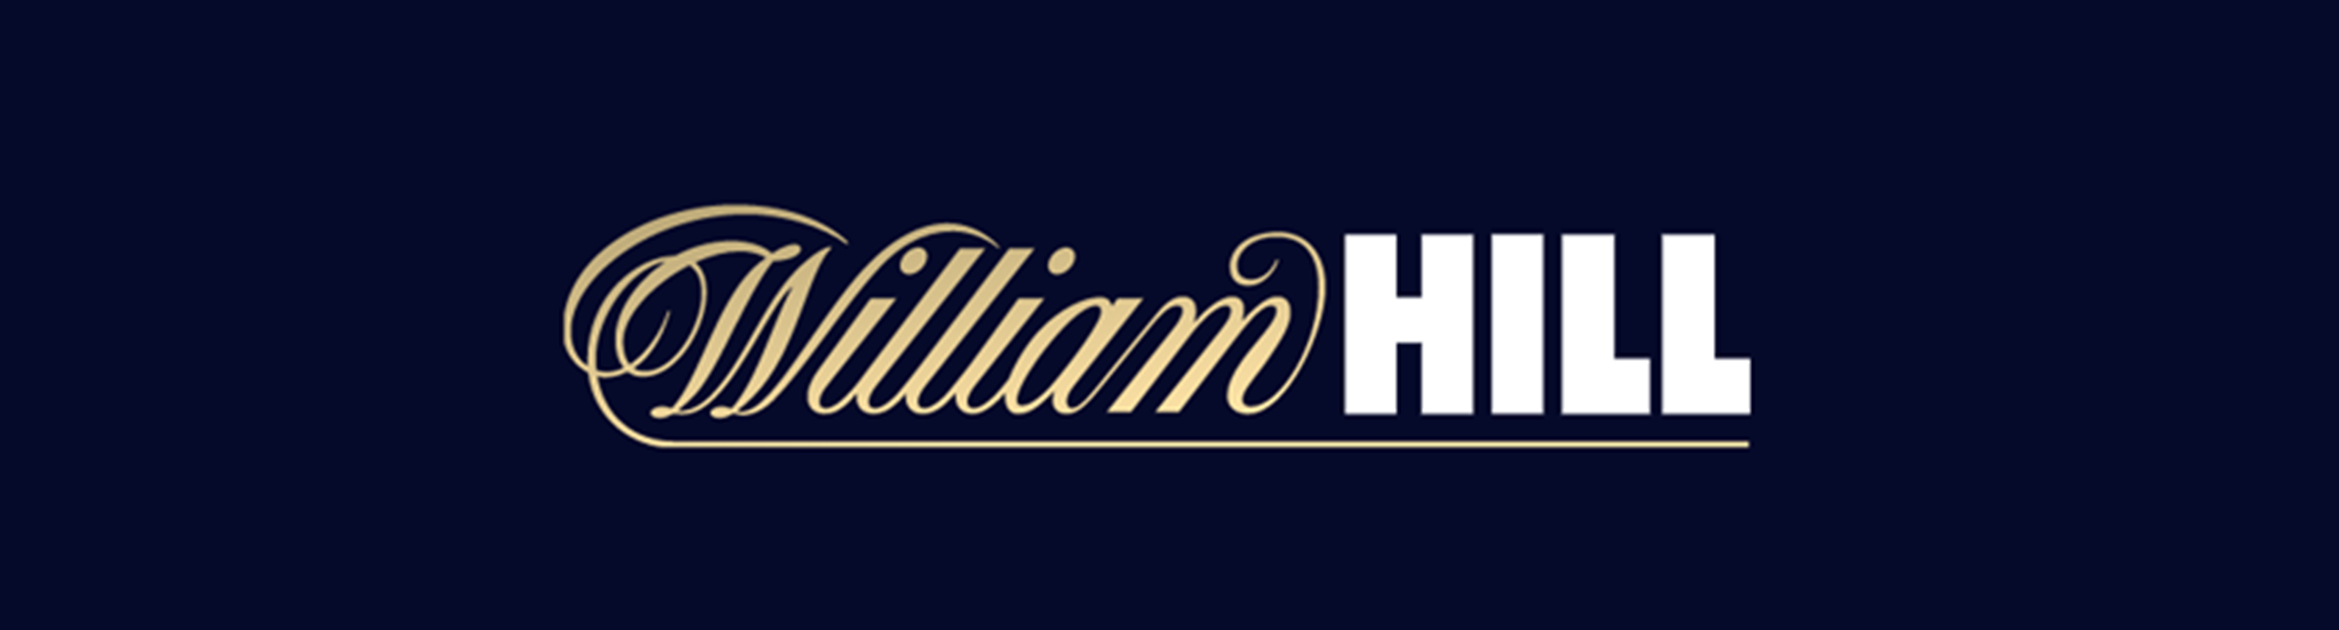 contact william hill